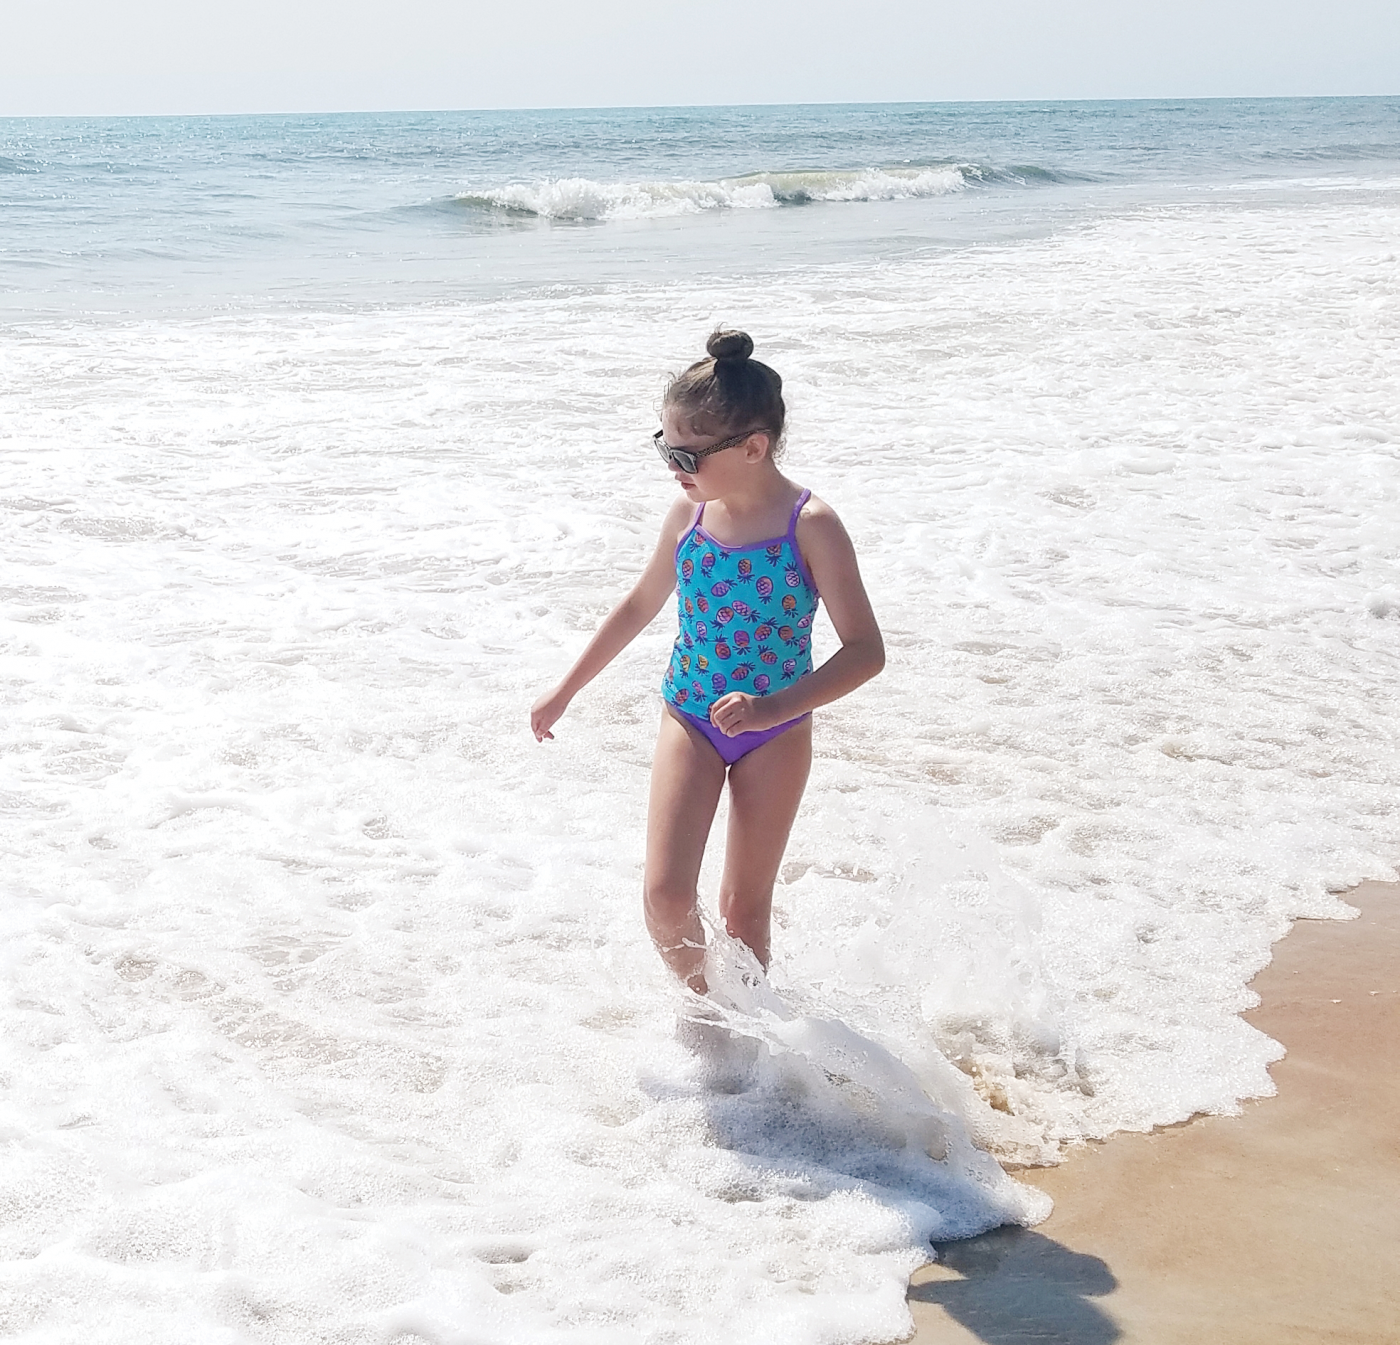 A little girl standing in the water at the beach,